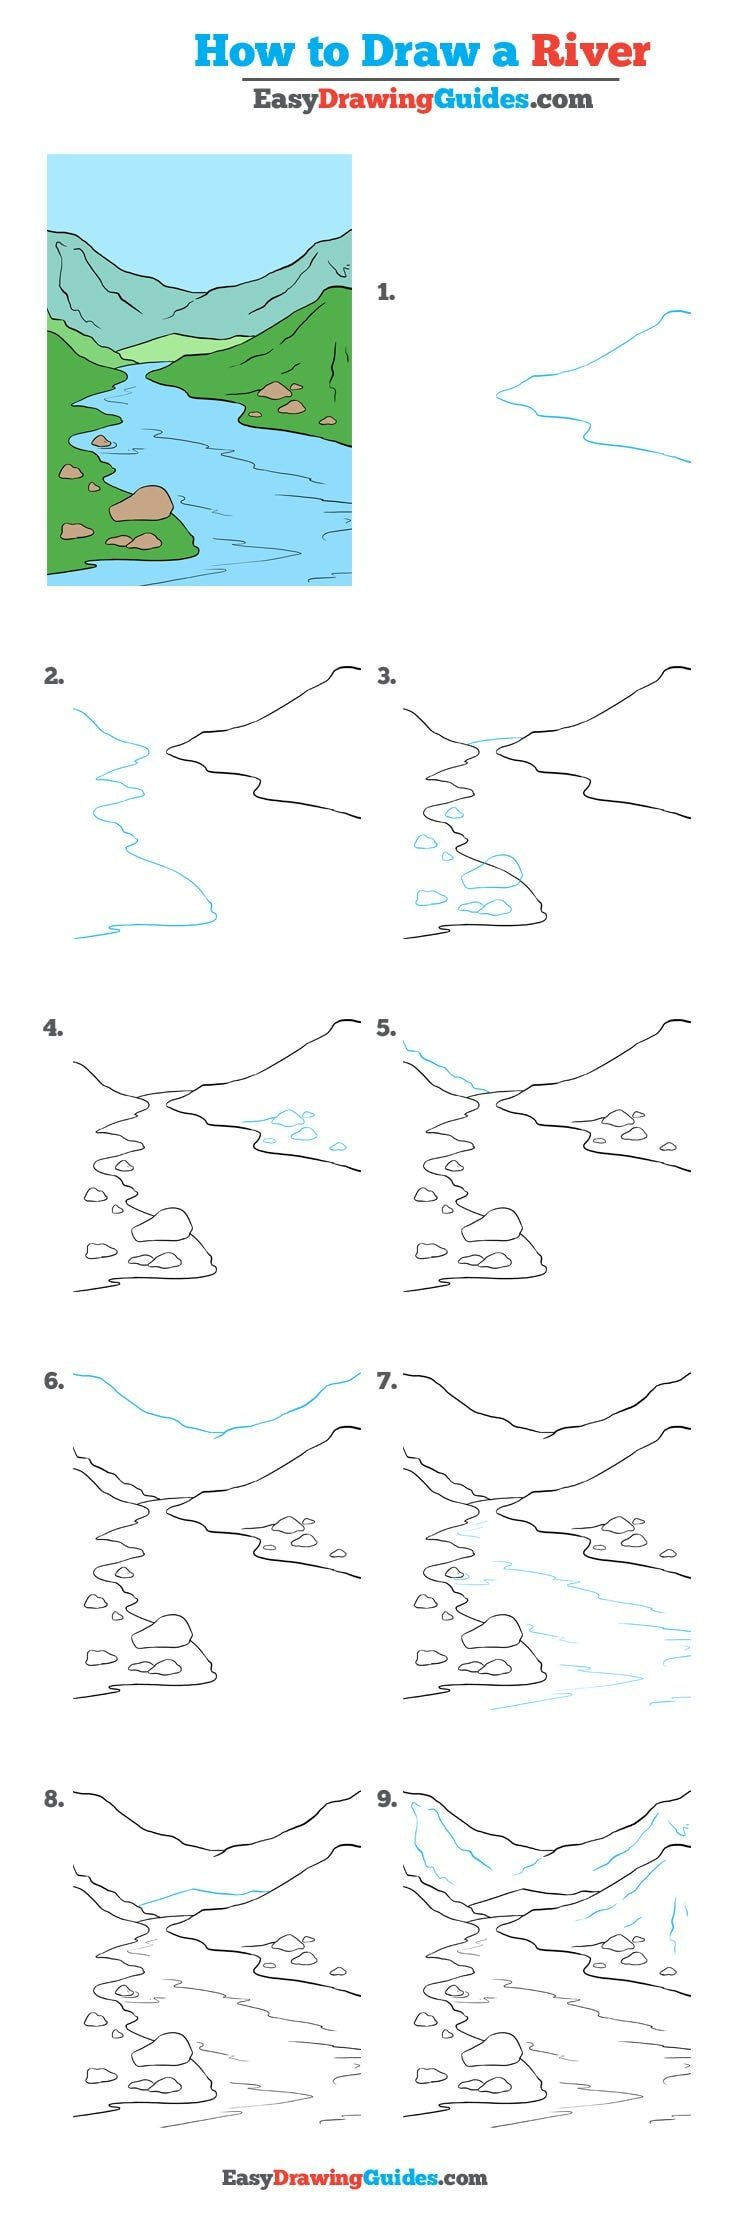 How to Draw River